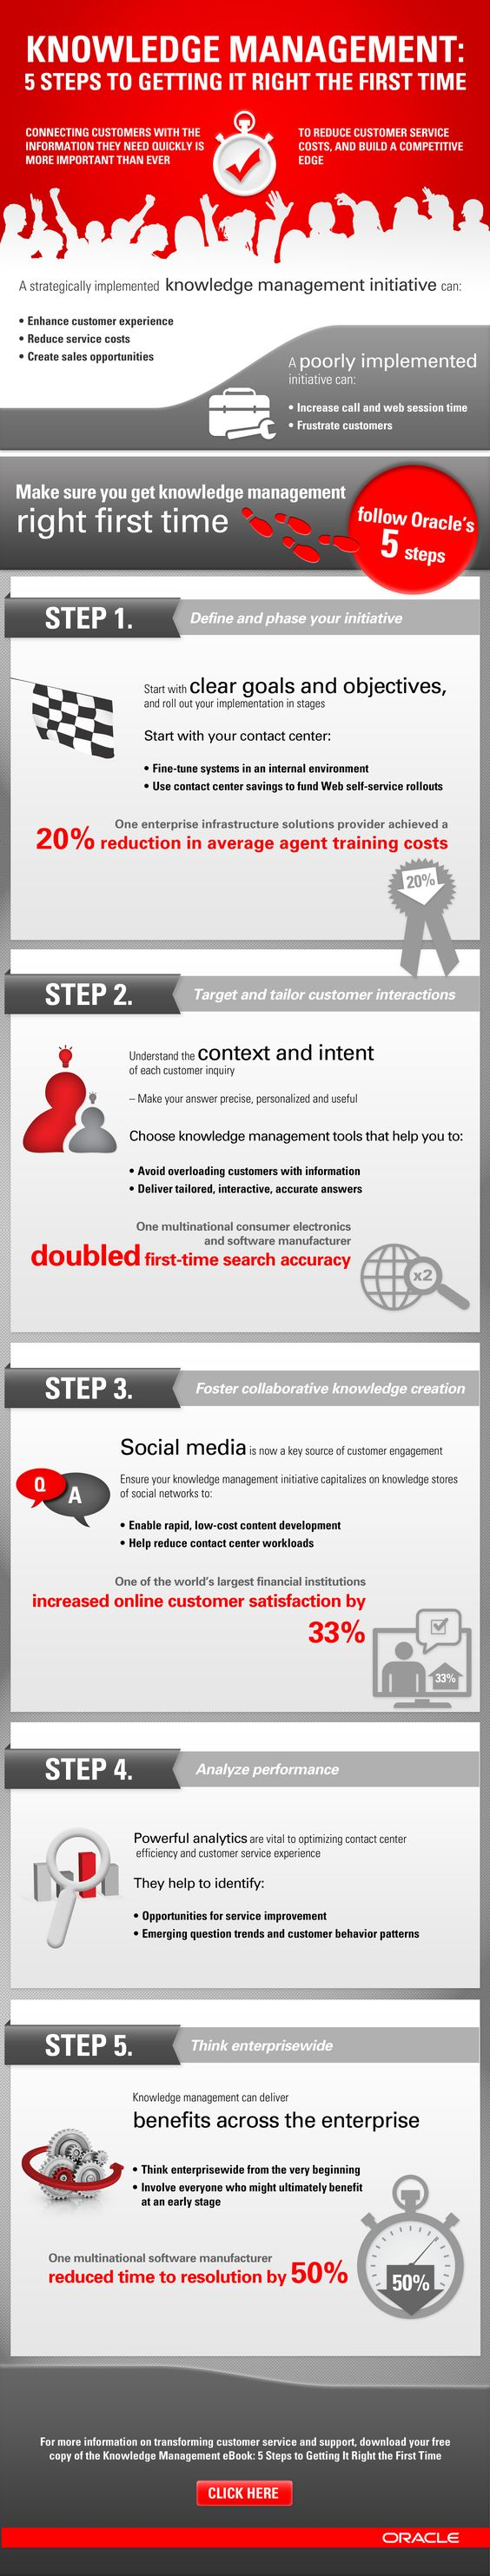 Knowledge management: Get it right the first time